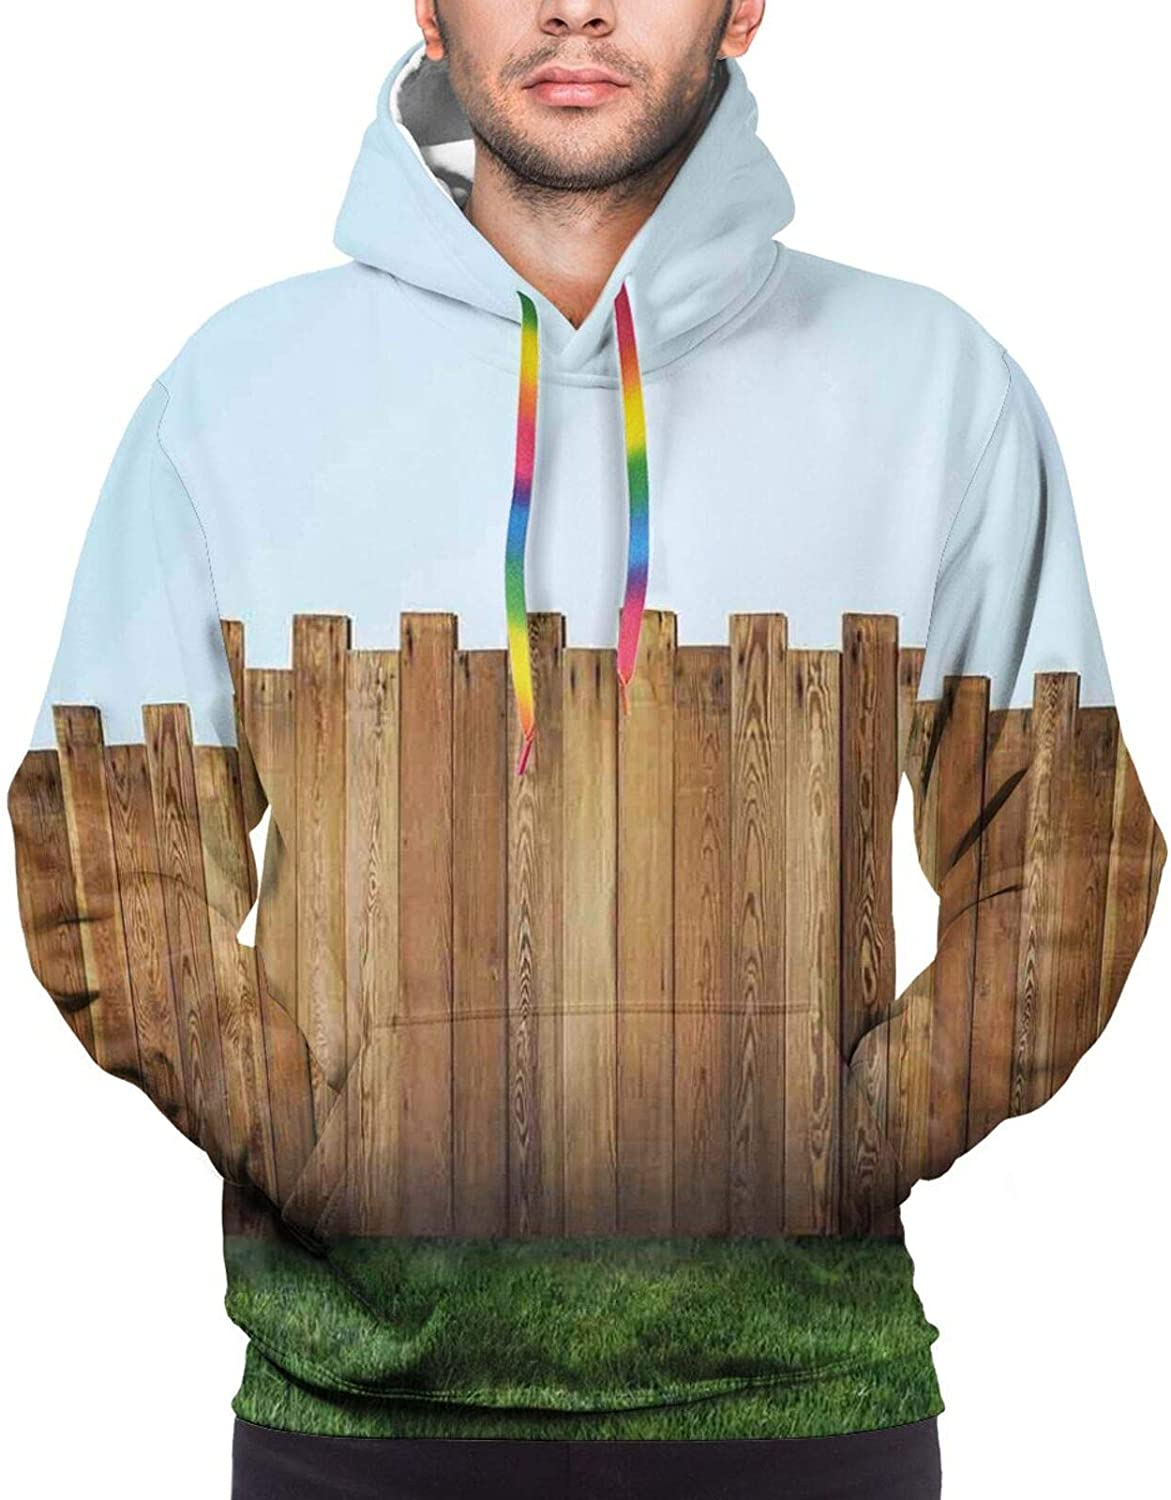 Men's Hoodies Sweatshirts,Rustic Old Train in Country Locomotive Wooden Wagons Rail Road with Smoke